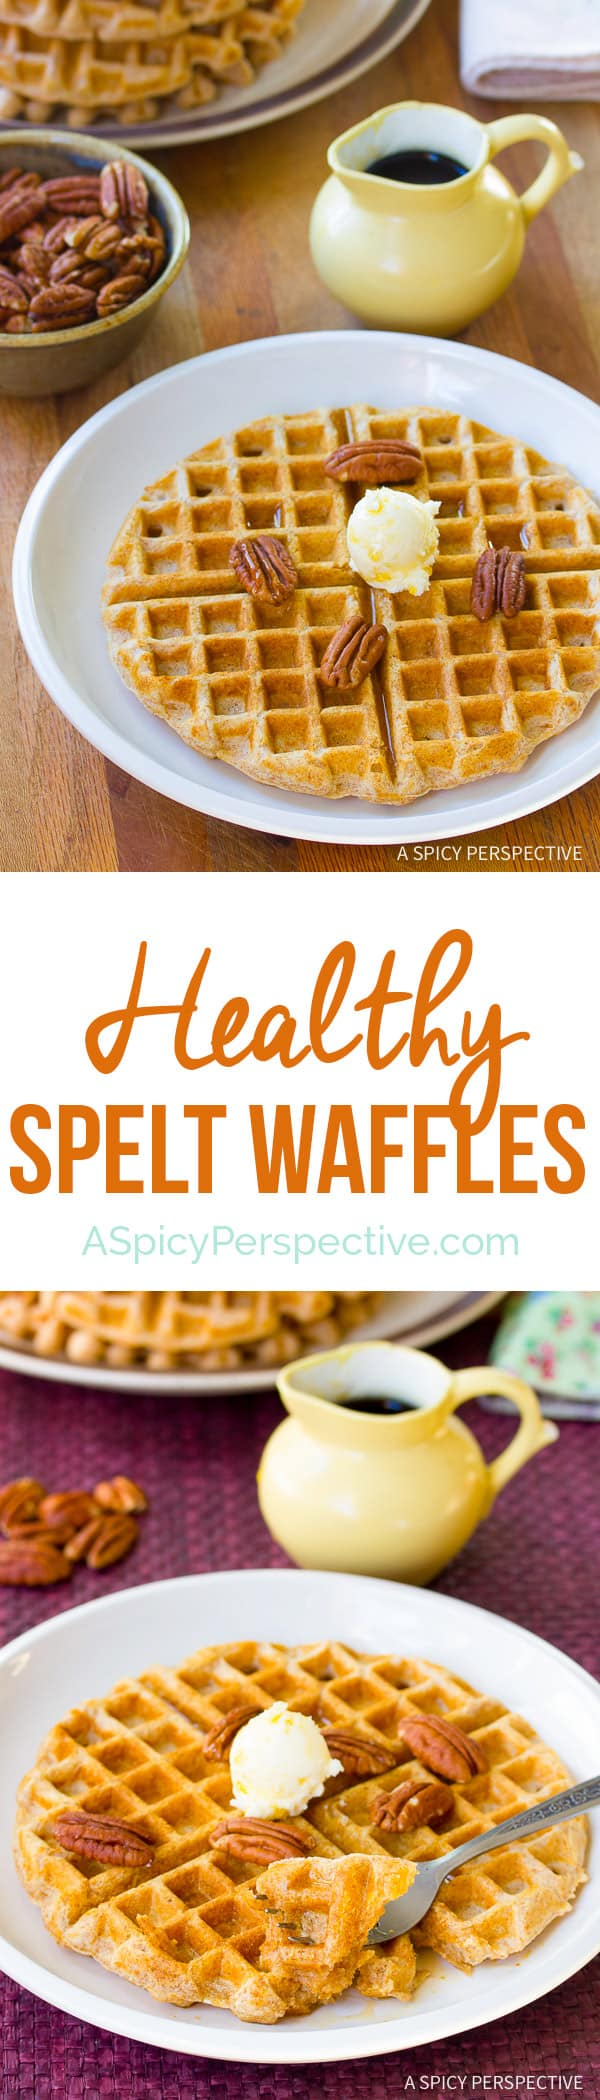 Love These Spelt Waffles | ASpicyPerspective.com